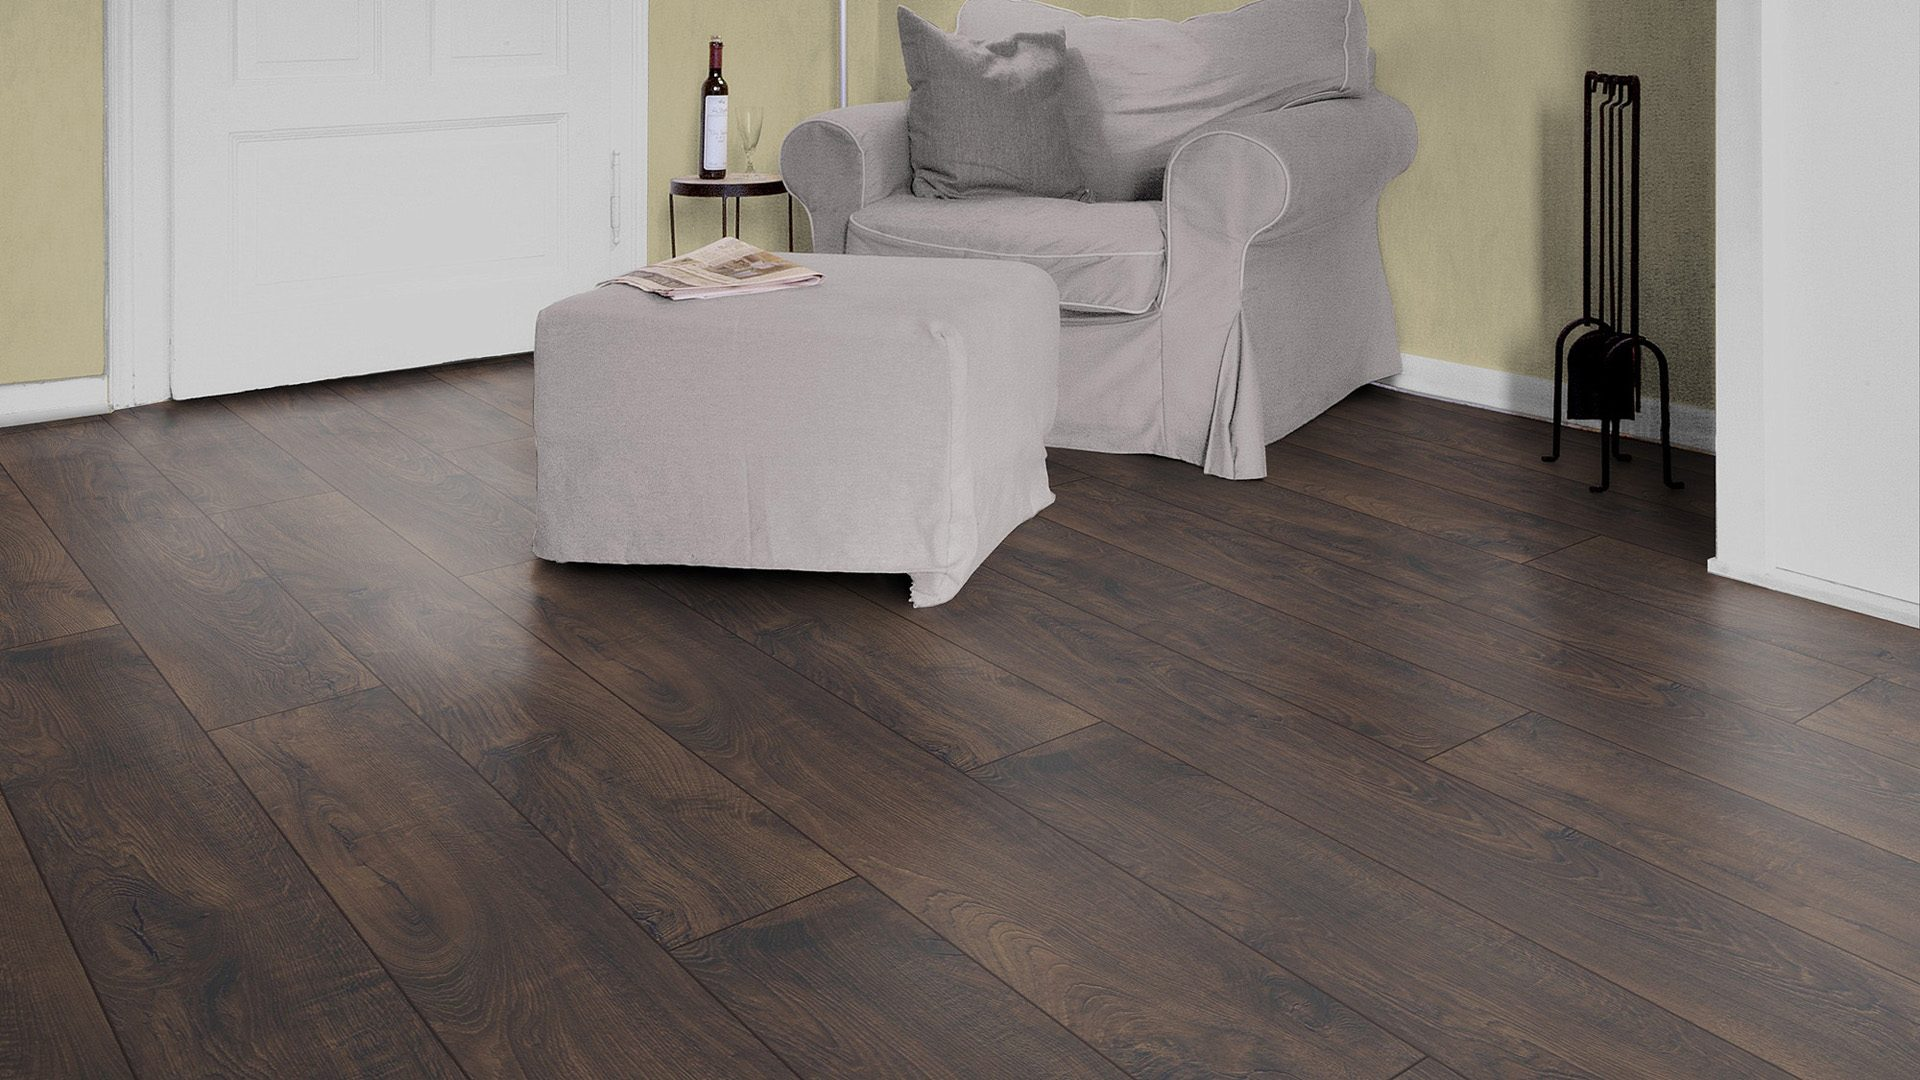 embelton aqua tuf vinyl flooring geelong floors. Black Bedroom Furniture Sets. Home Design Ideas